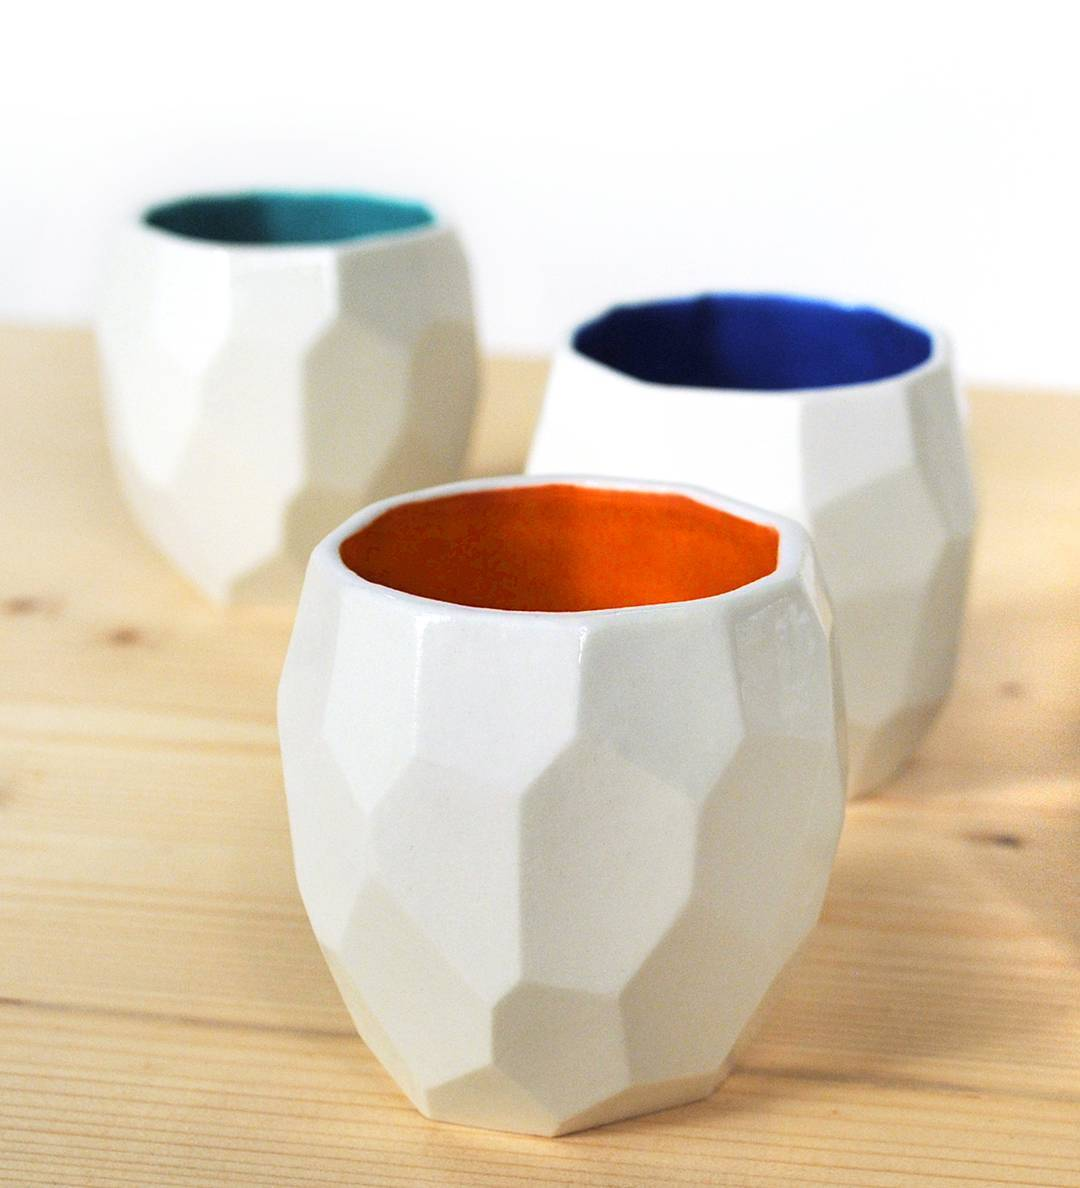 The poligon cups, the most popular this year